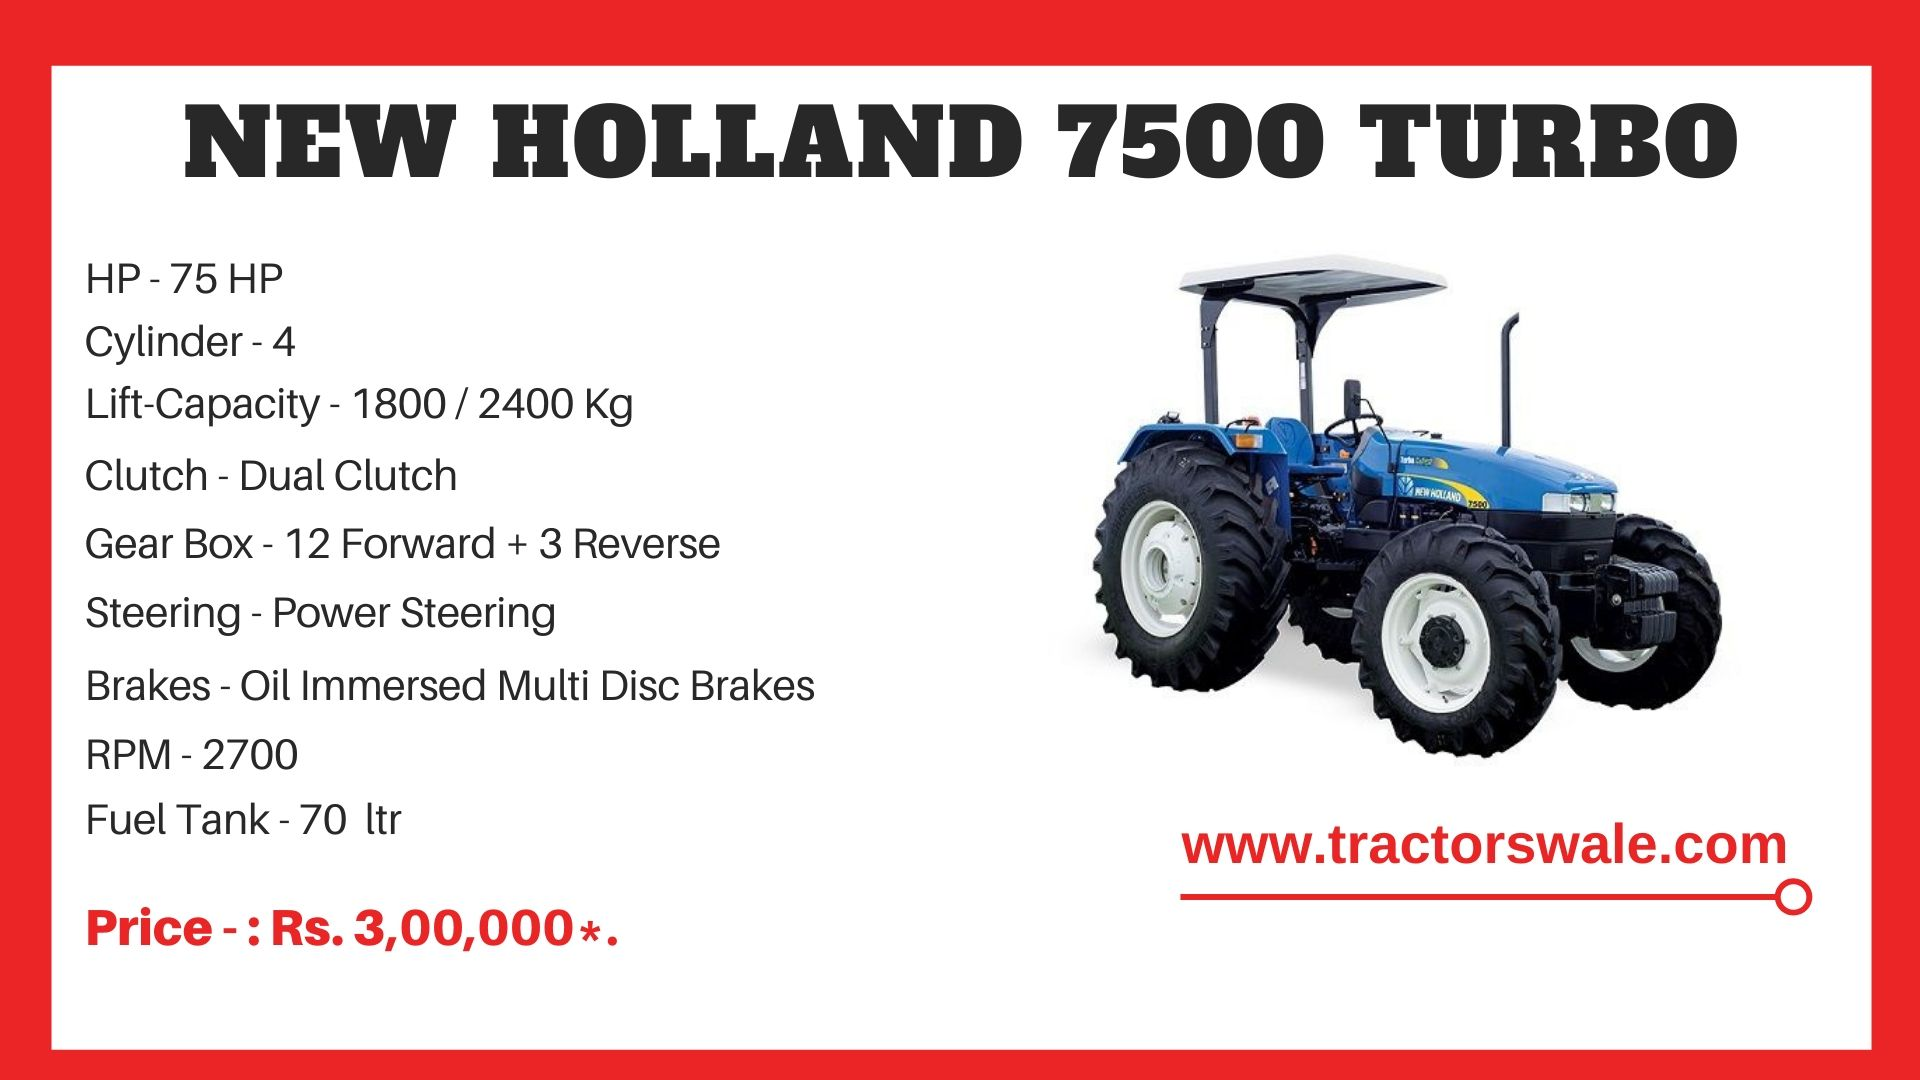 New Holland 7500 tractor specs